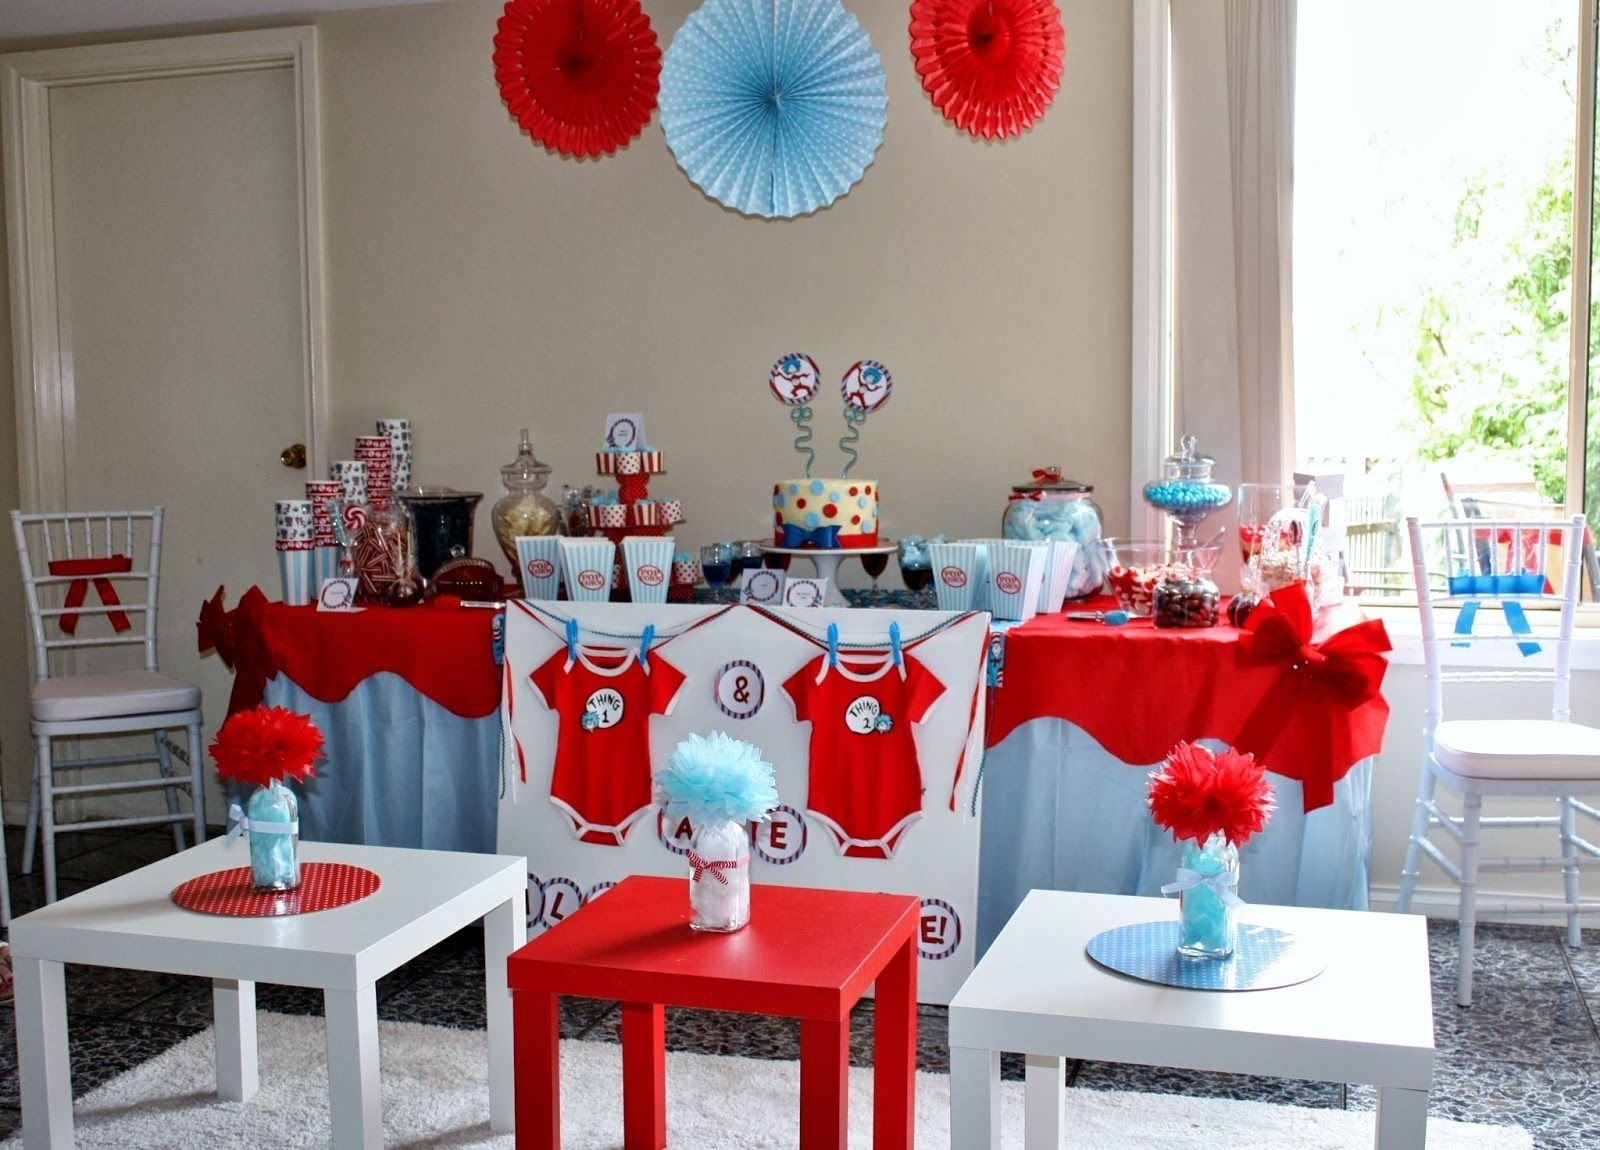 10 Trendy Thing 1 And Thing 2 Party Ideas party of 11 tempting fate a thing 1 and thing 2 baby shower baby 2 2020